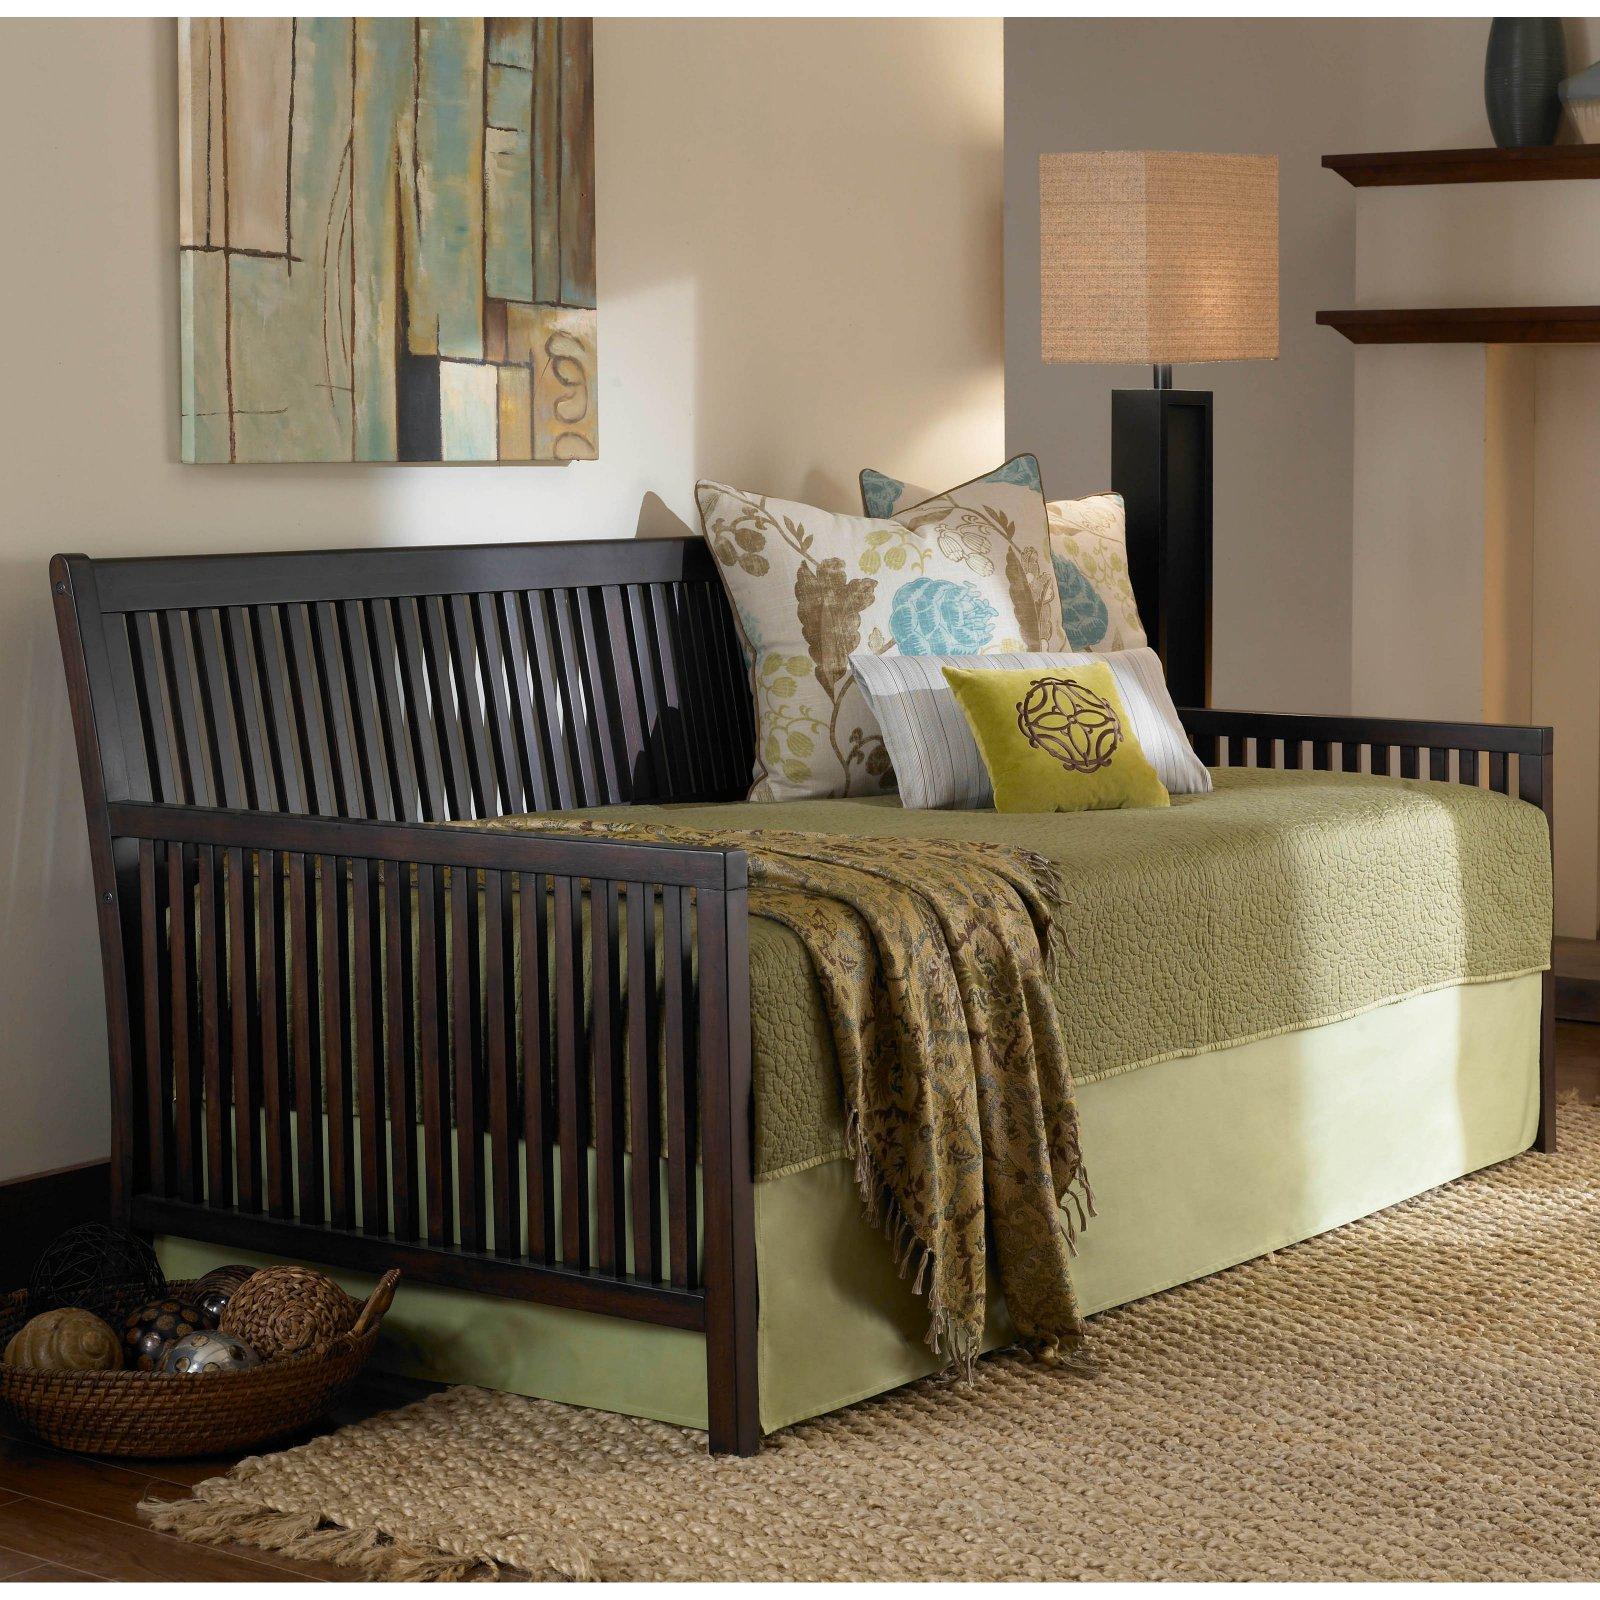 Mission Complete Wood Day Bed with Euro Top Deck and Trundle Bed Pop-Up Frame, Espresso Finish, Twin by Fashion Bed Group